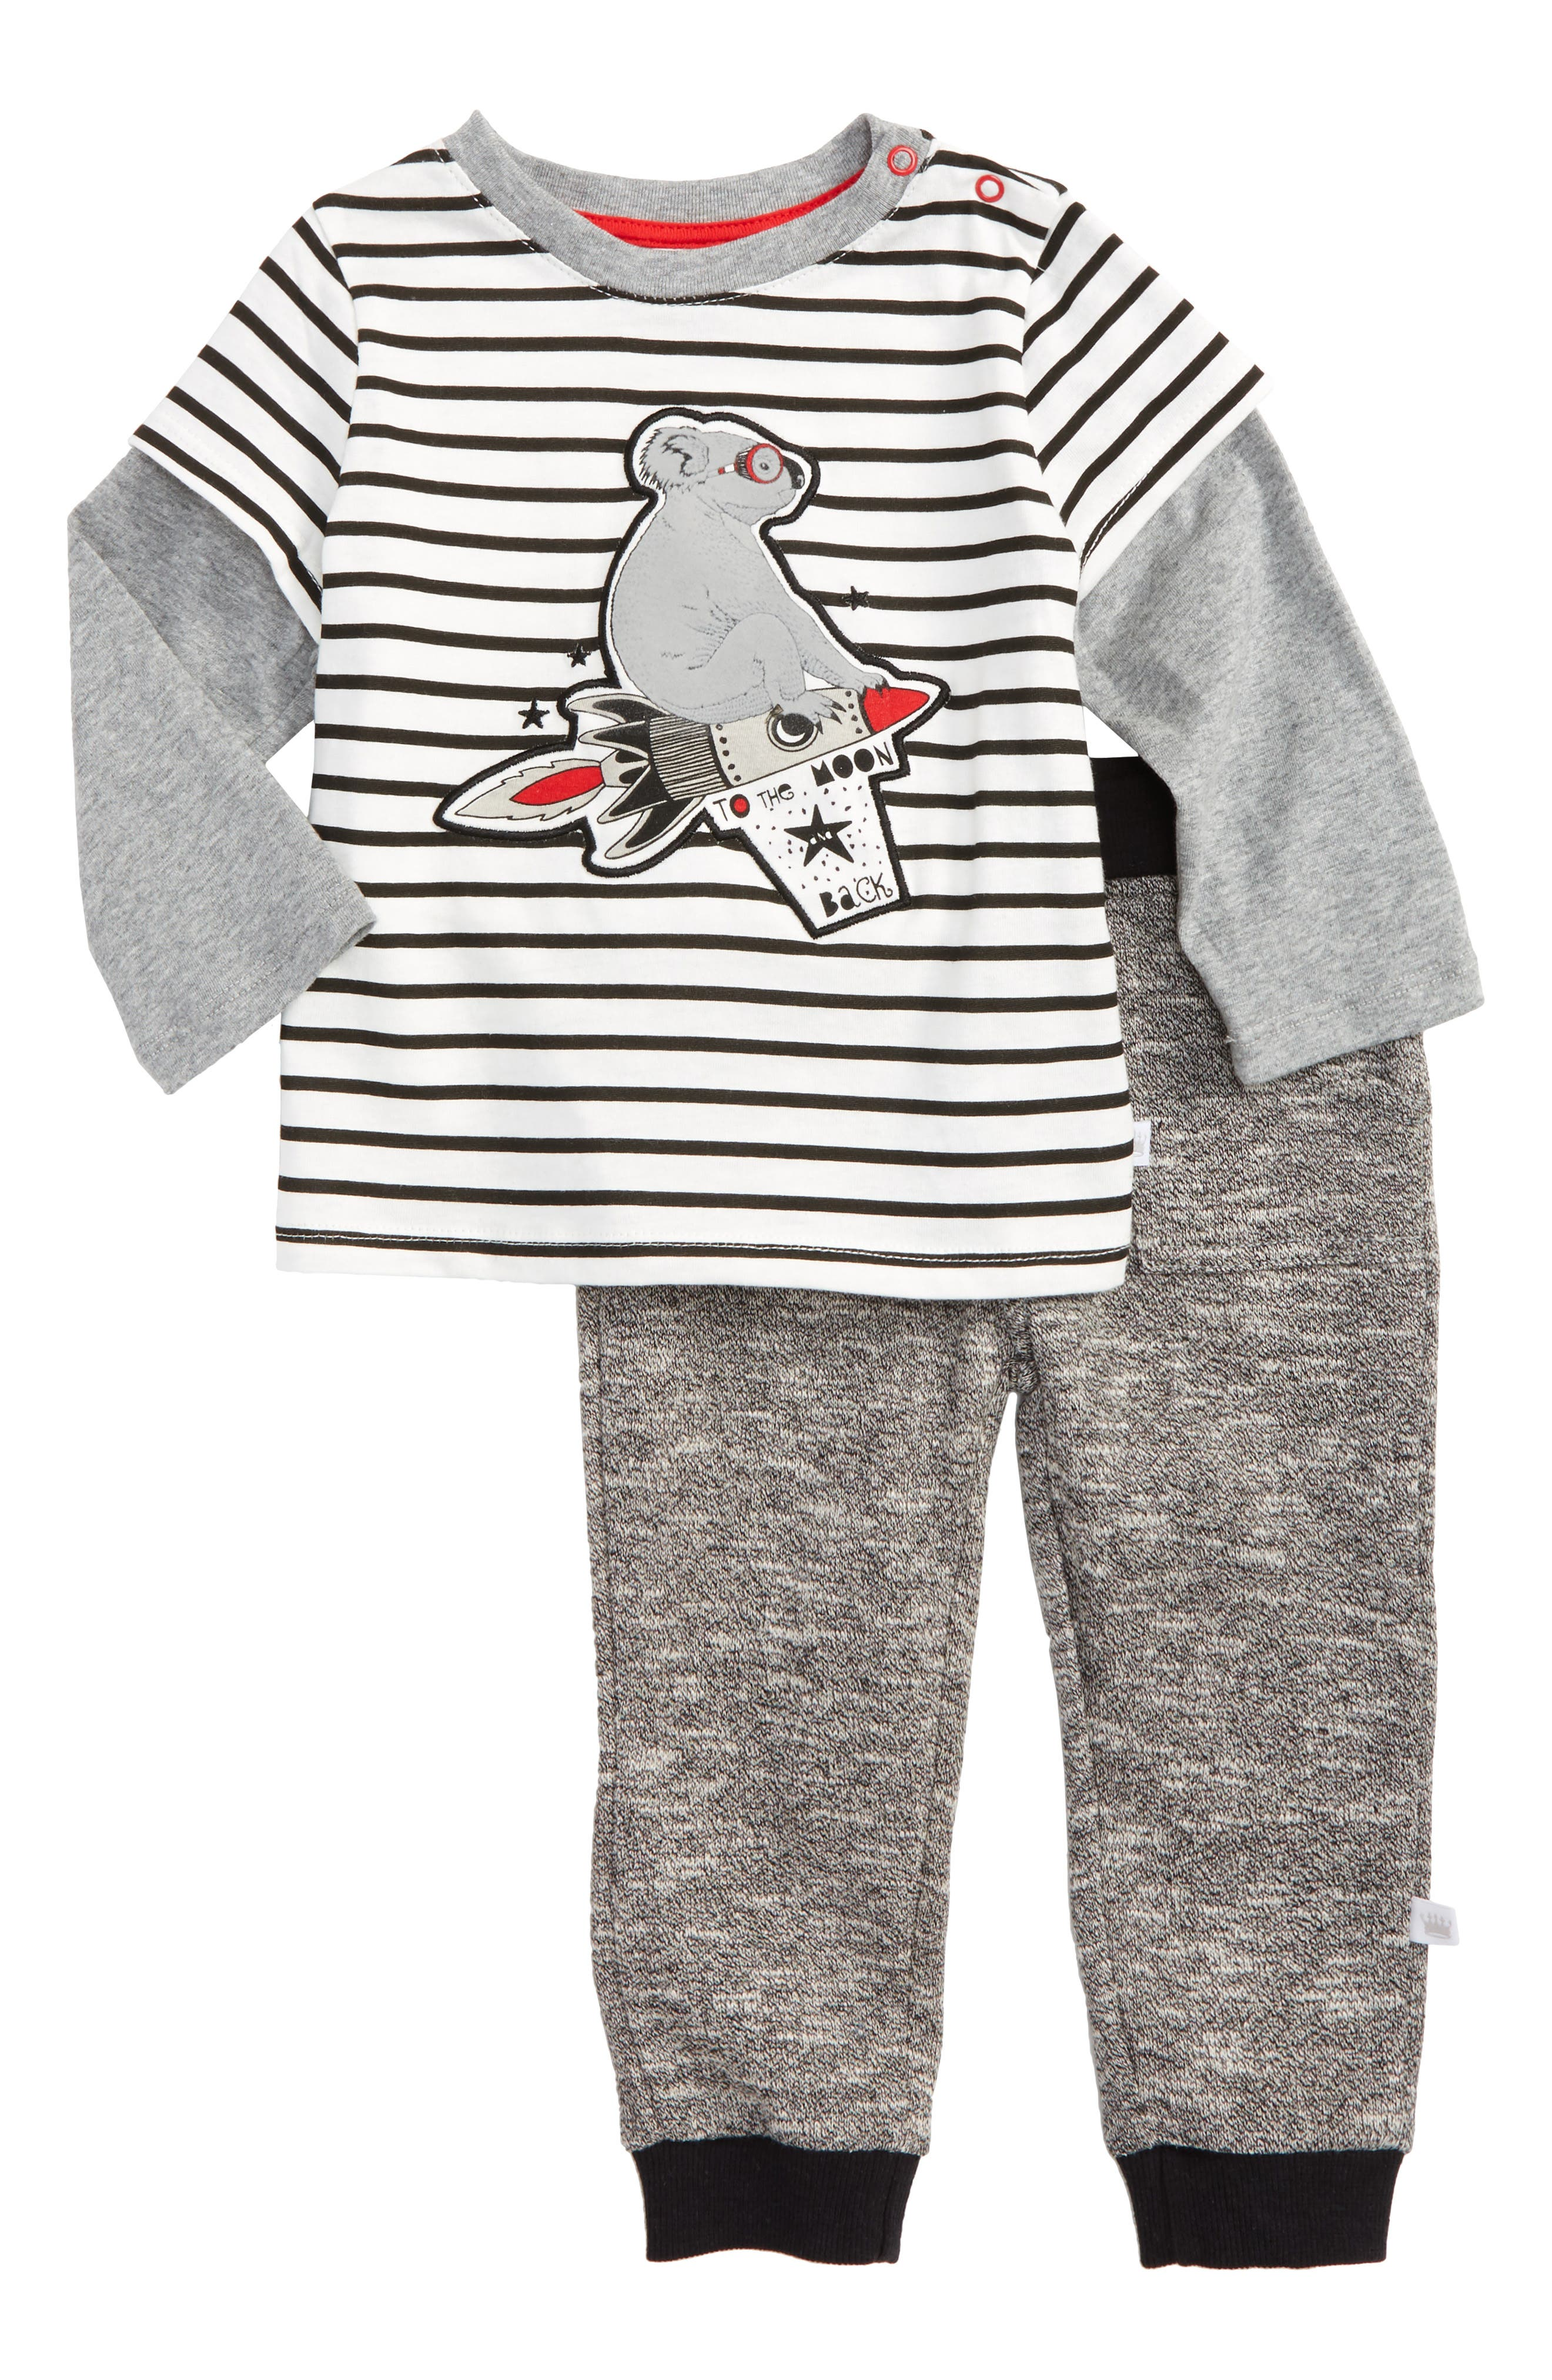 Rosie Pope To the Moon Graphic T-Shirt & Pants Set (Baby Boys)